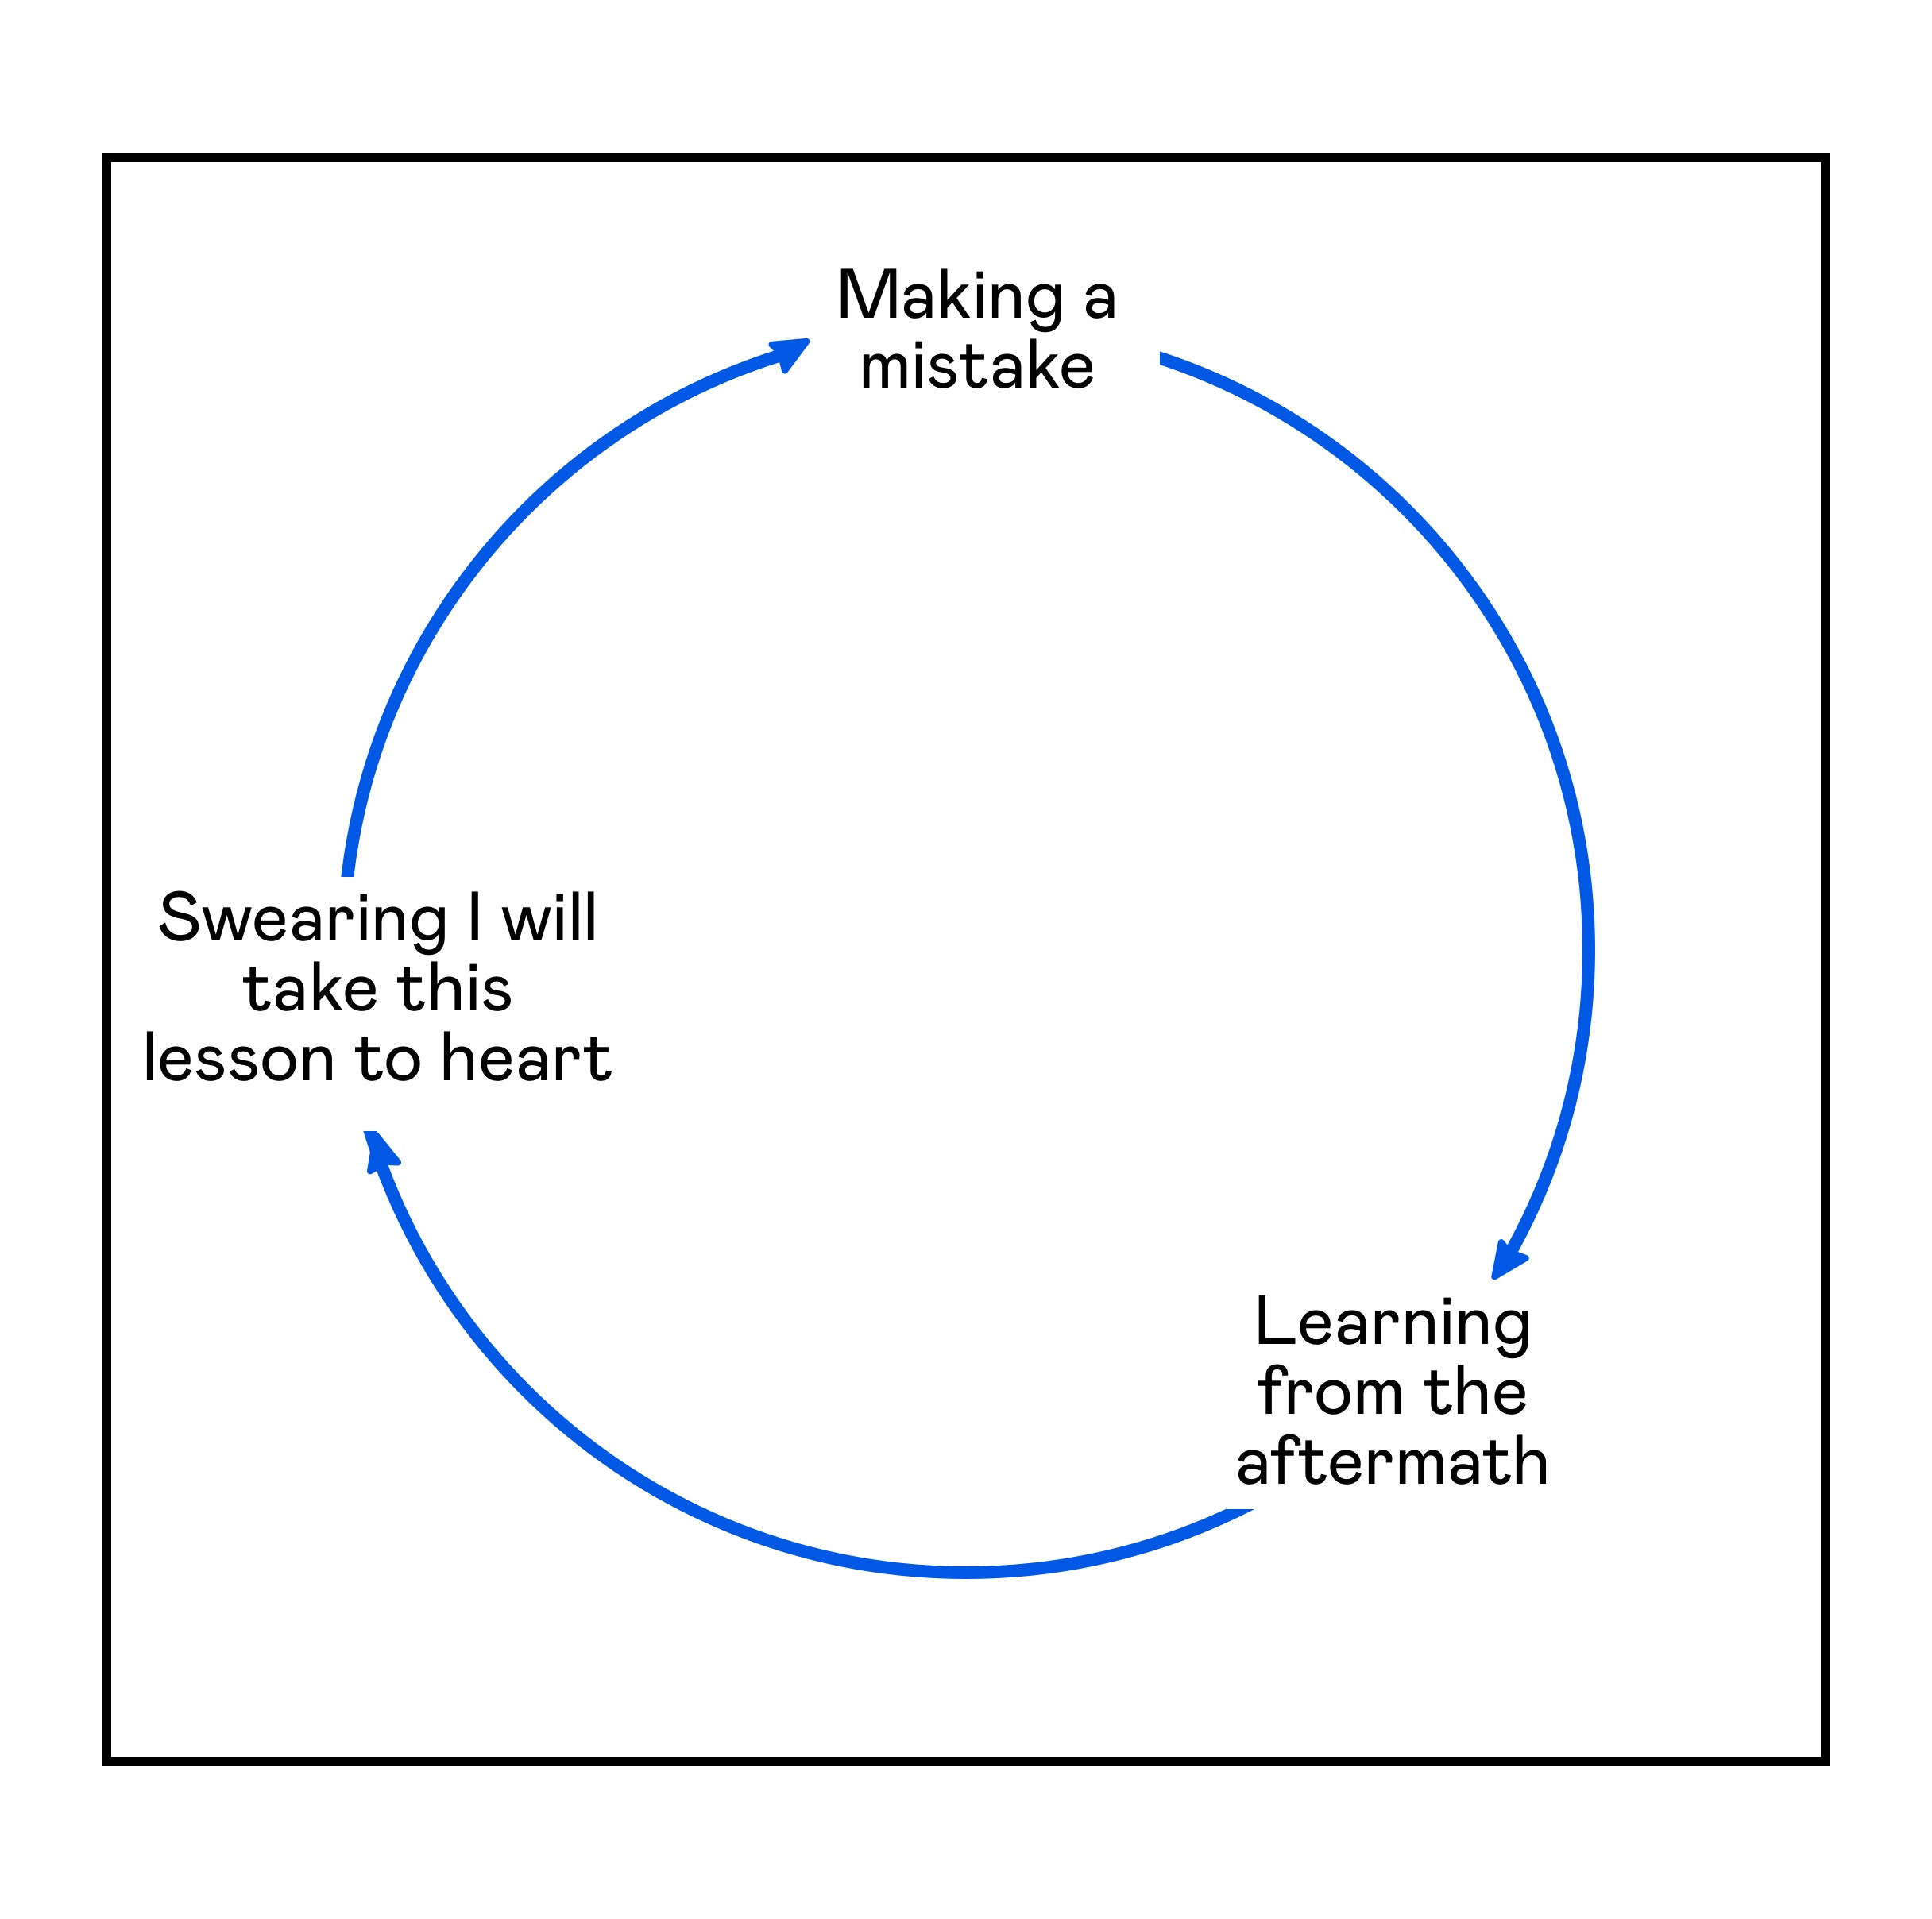 A circular cycle that goes: 1. Making a mistake, 2. Learning from the aftermath, 3. Swearing I will take this lesson to heart. Repeat.